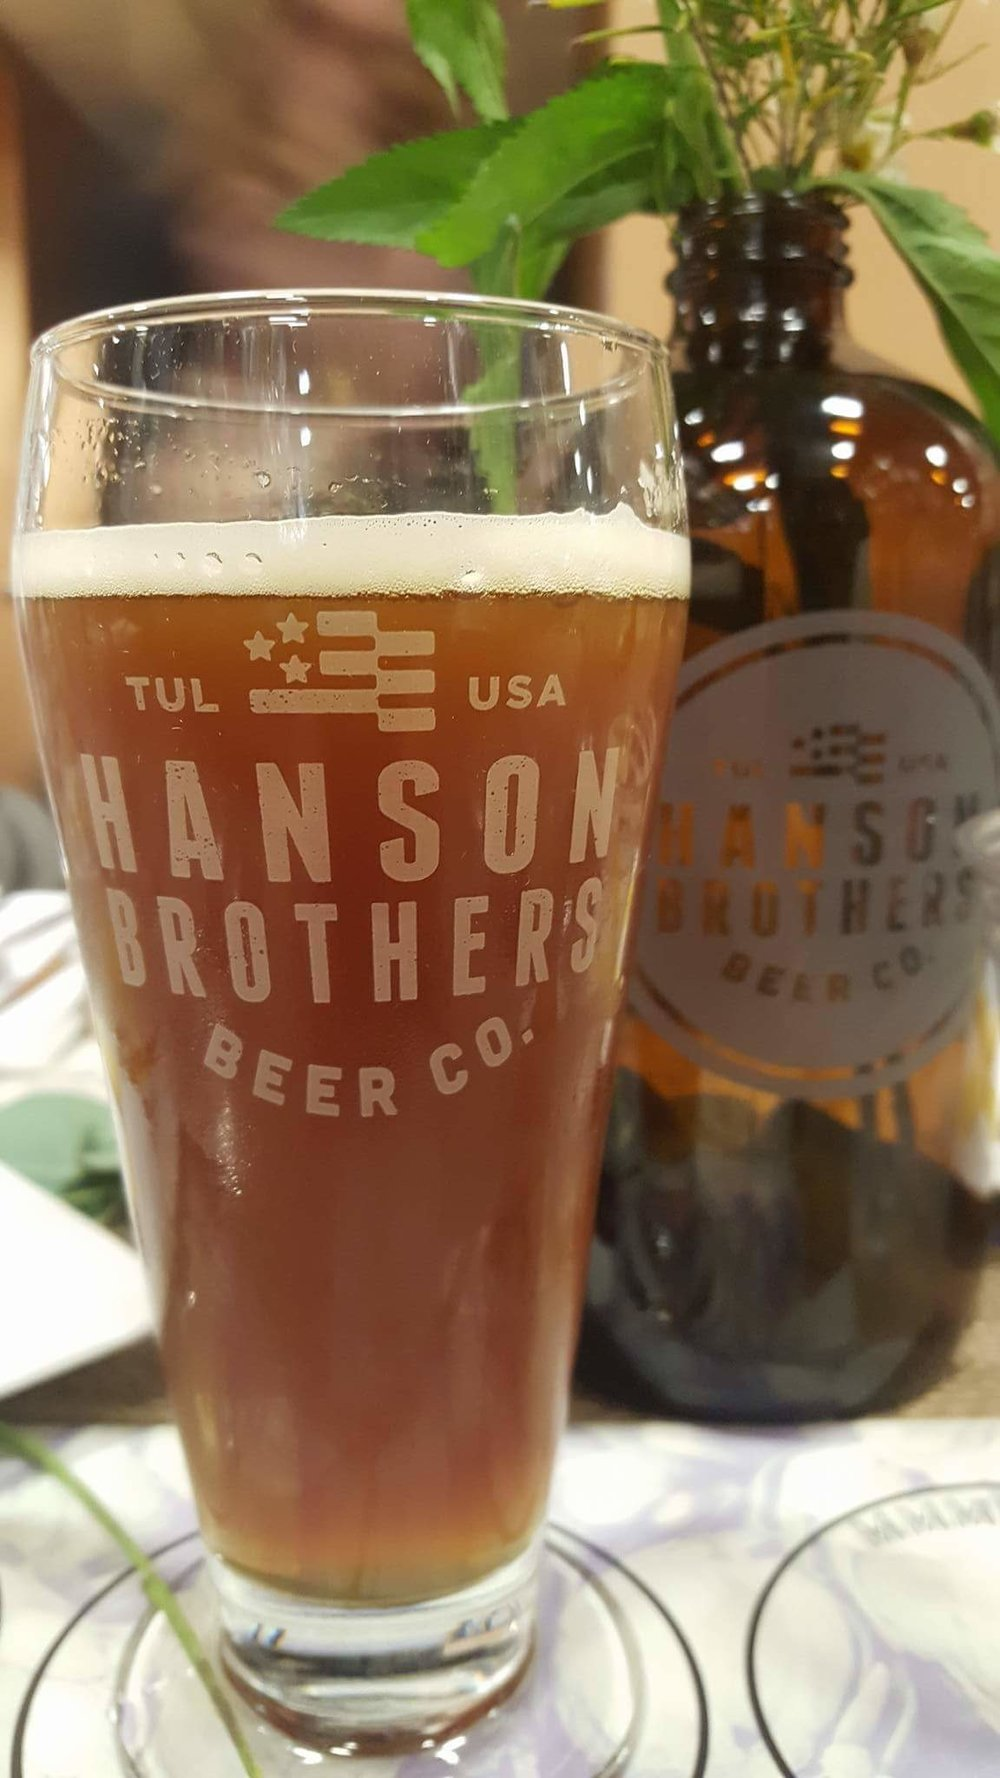 - One of the 4 Hanson Brothers Beer Co. beers paired with the evening's meal.The Hanson Brothers' beers are brewed at the Dead Armadillo Brewery in the East Village of Downtown Tulsa.